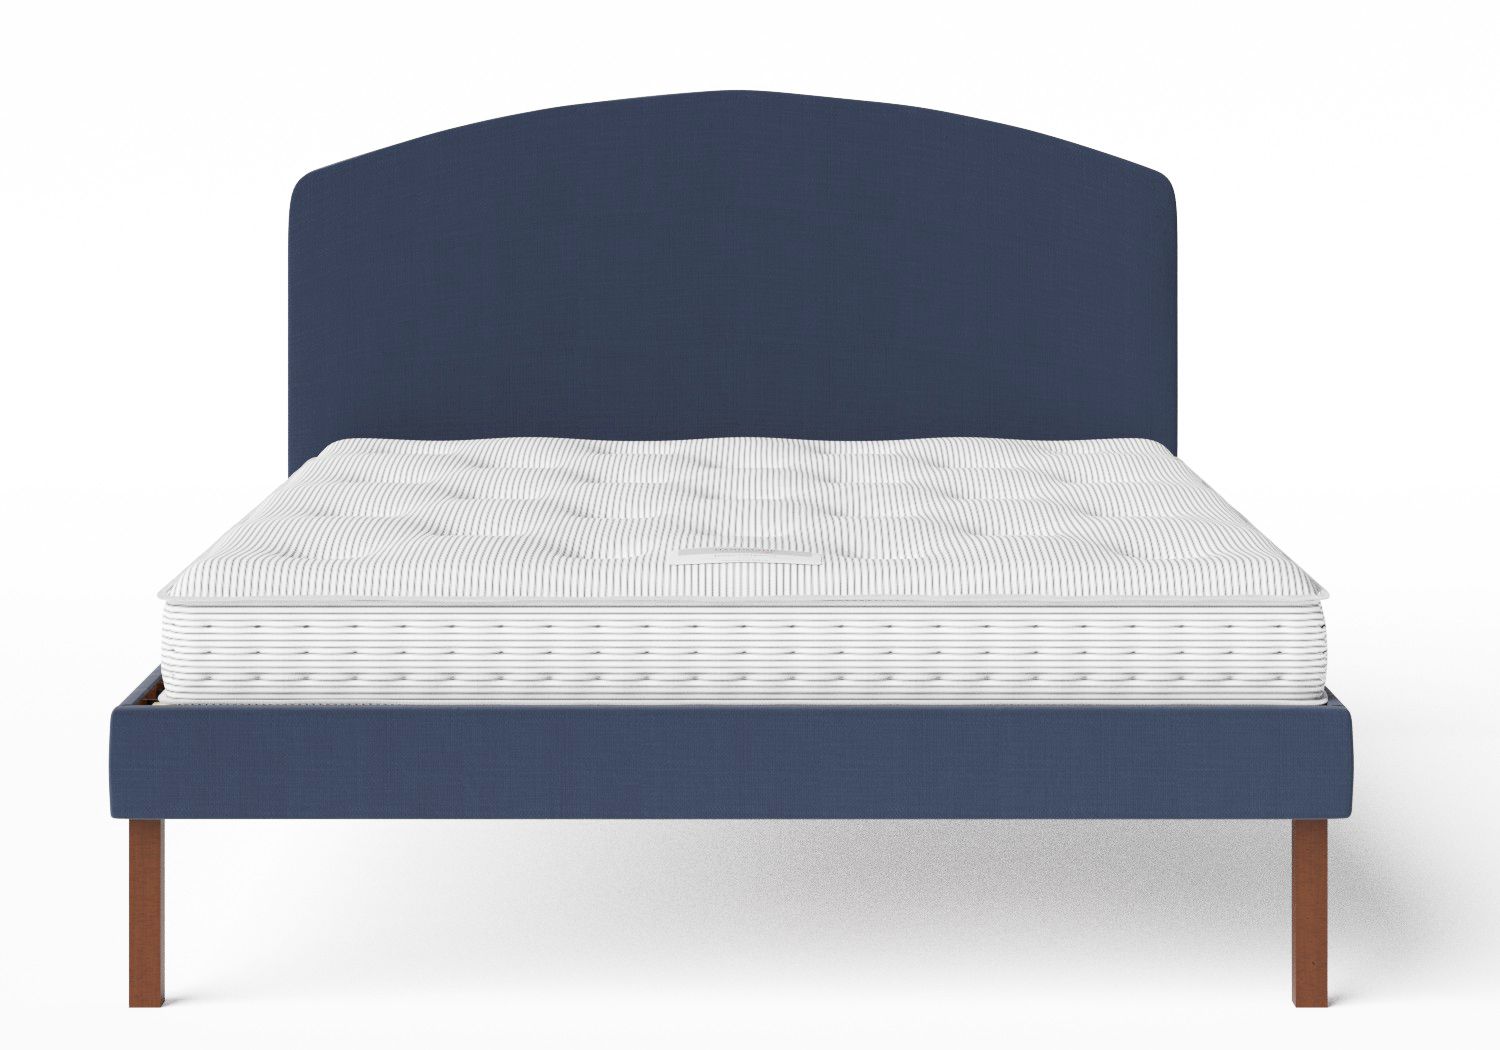 Okawa Upholstered Bed in Navy fabric shown with Juno 1 mattress